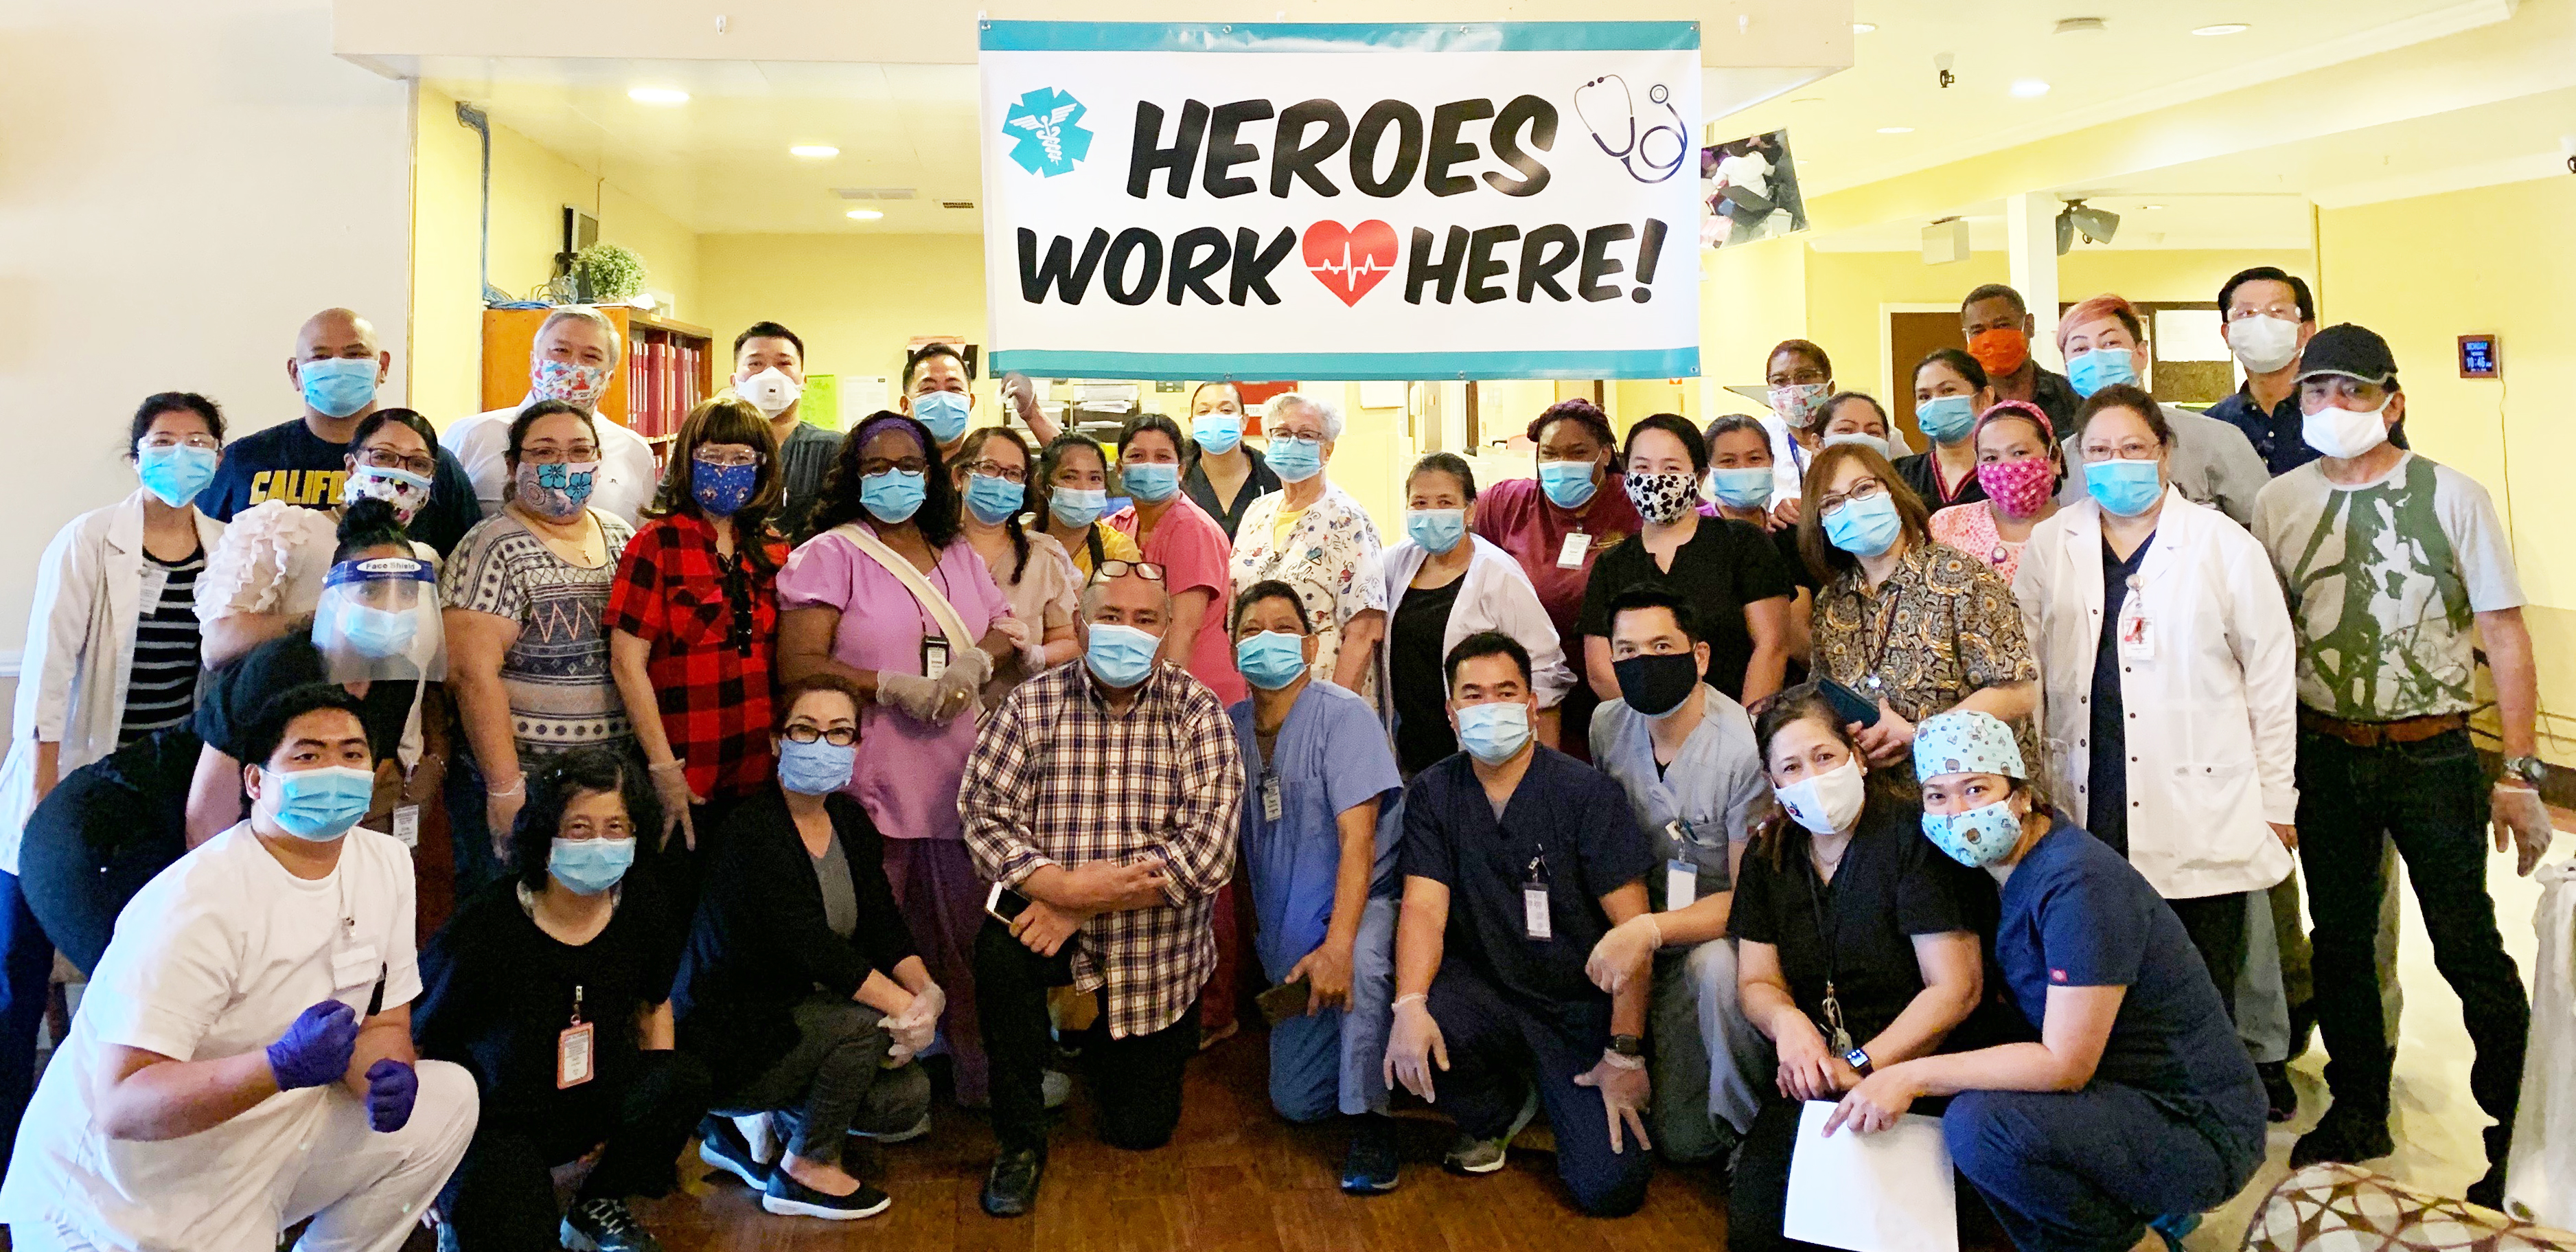 Heroes Work Here group photo